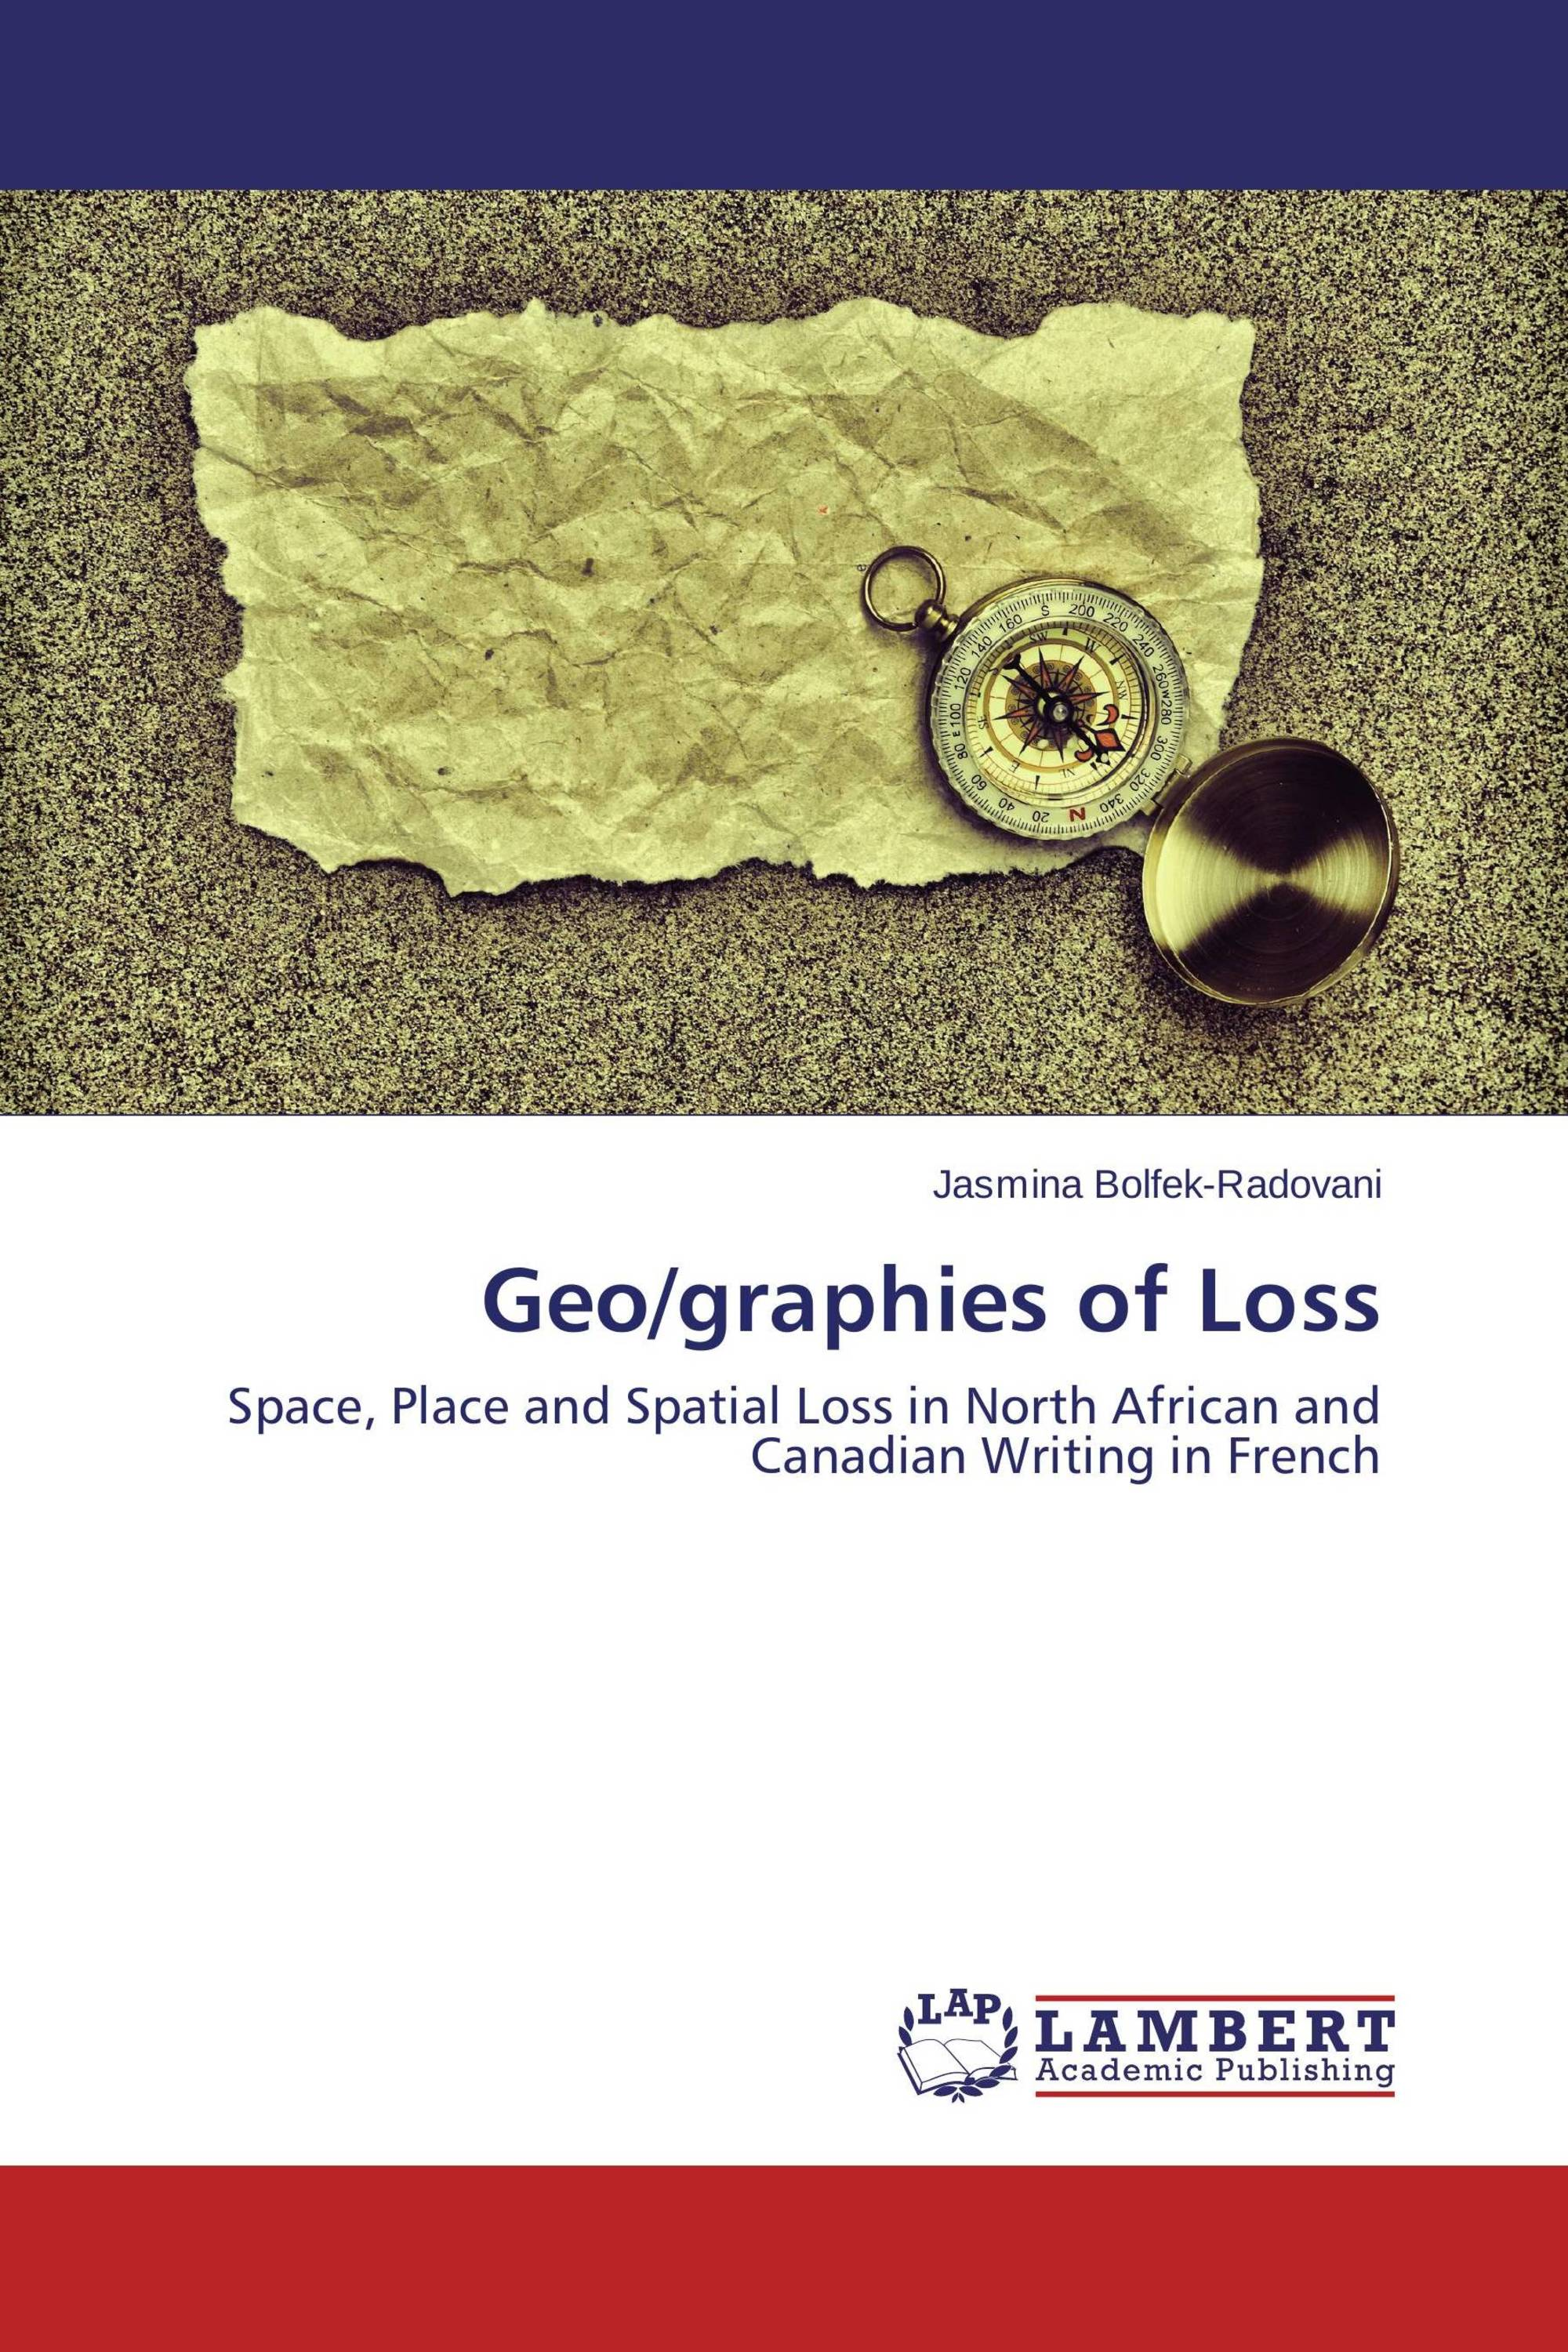 Geo/graphies of Loss